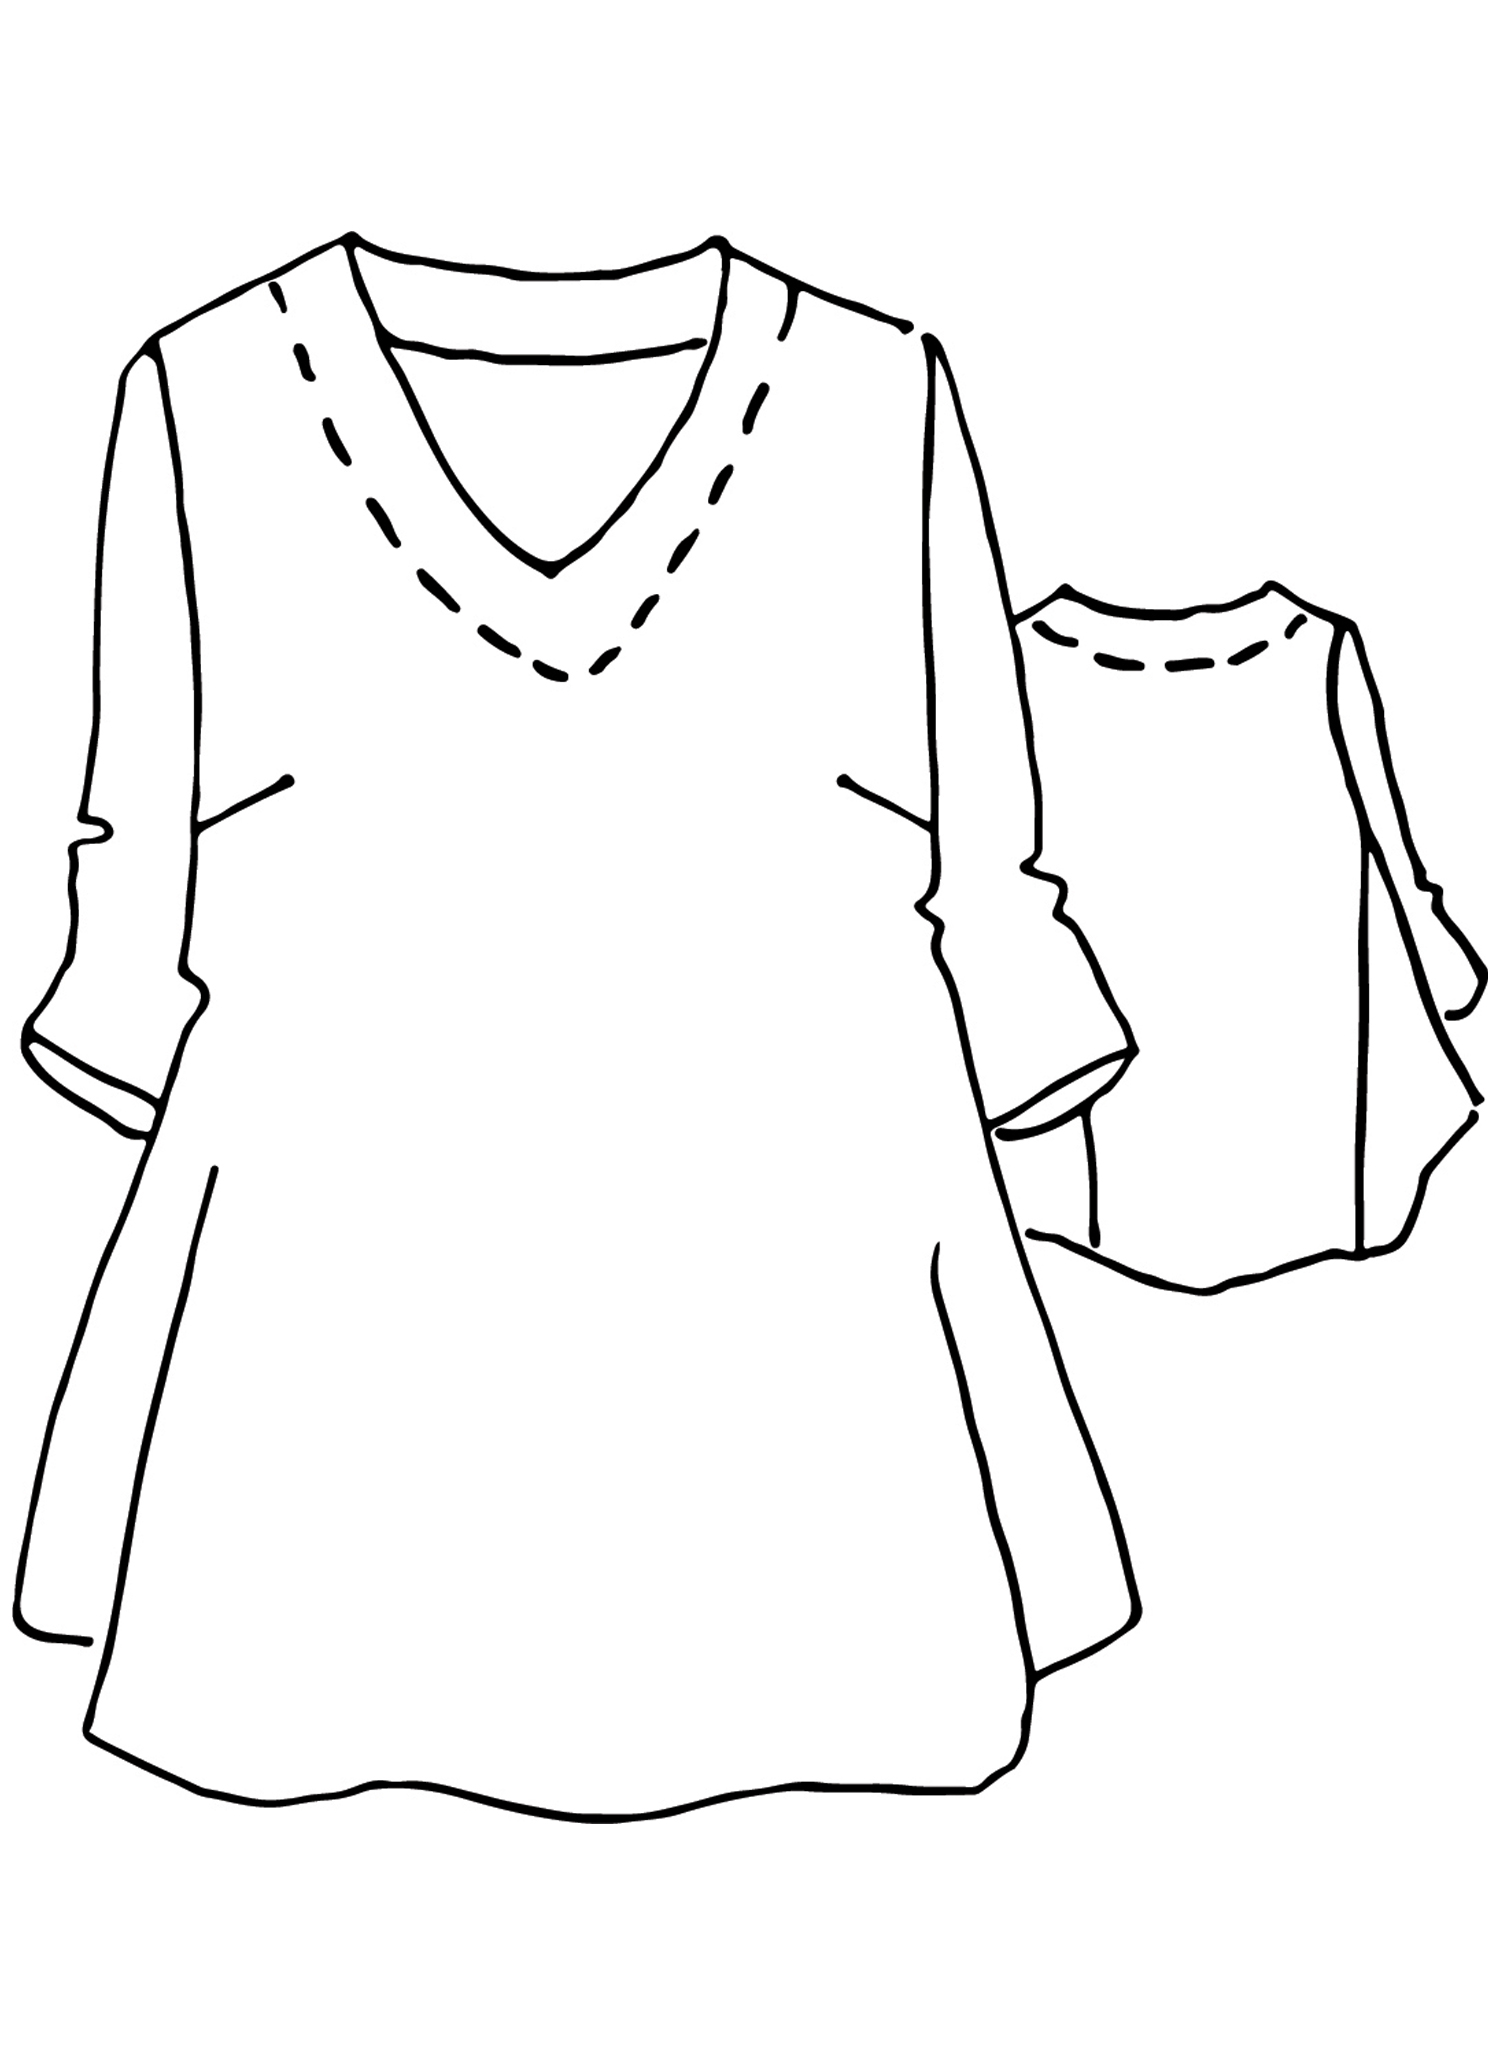 Bloom Tunic sketch image